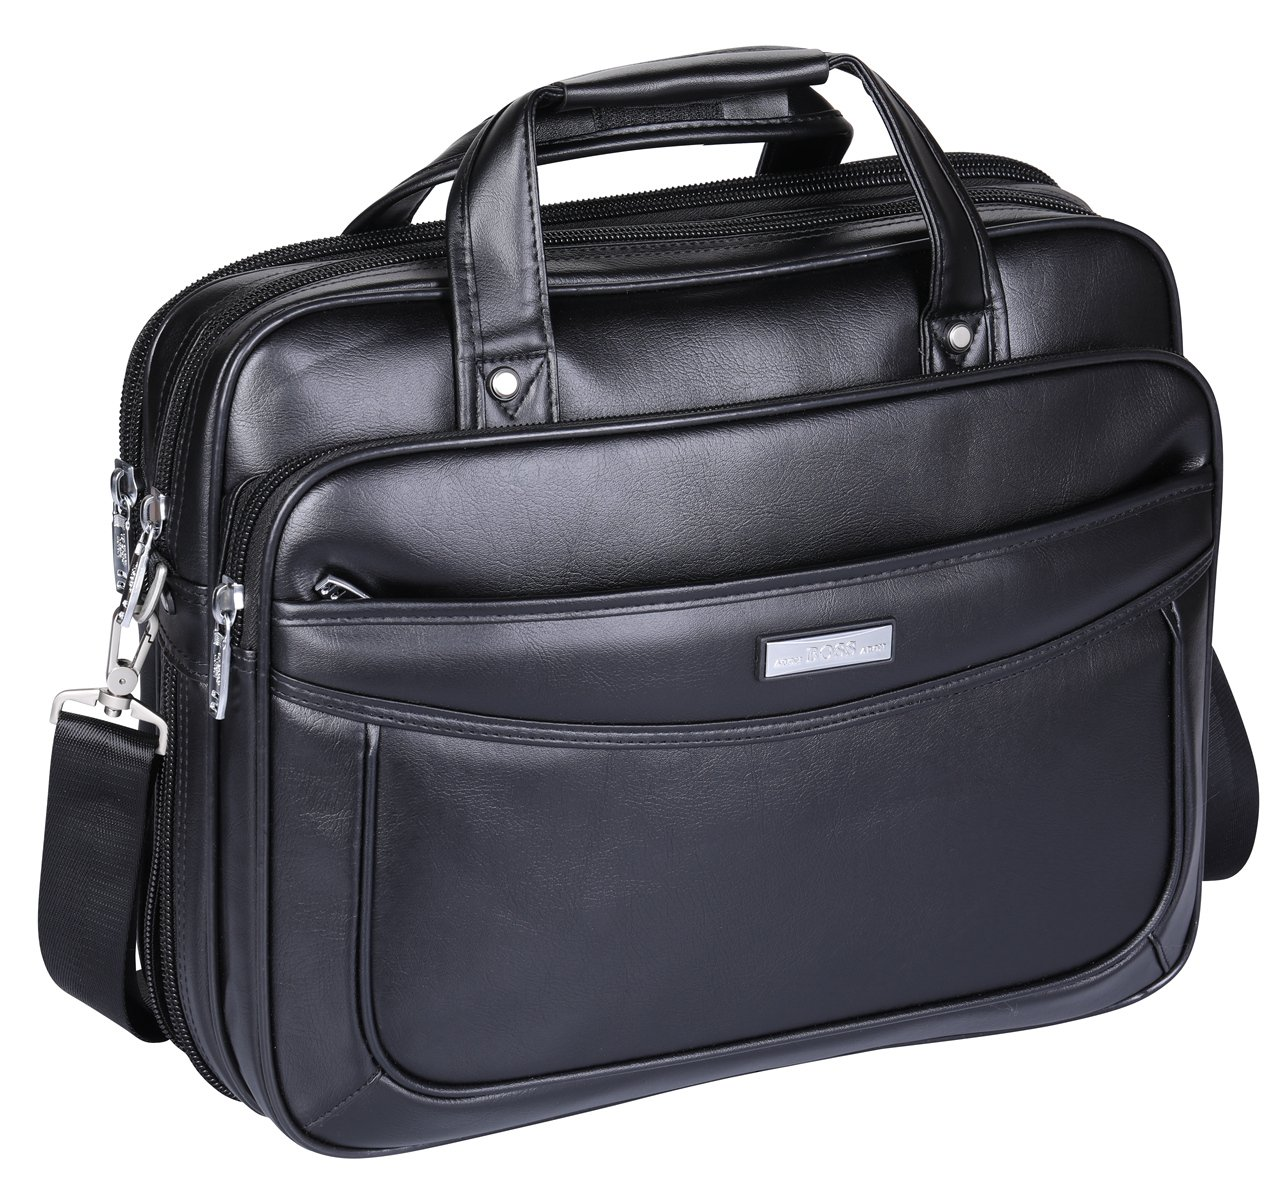 Leather 16 inch Laptop Briefcase, BOSSARON Water Resistant Large Shoulder Bag Functional Business Handle Bag for 15.6 inch Laptop (Black-AC1)